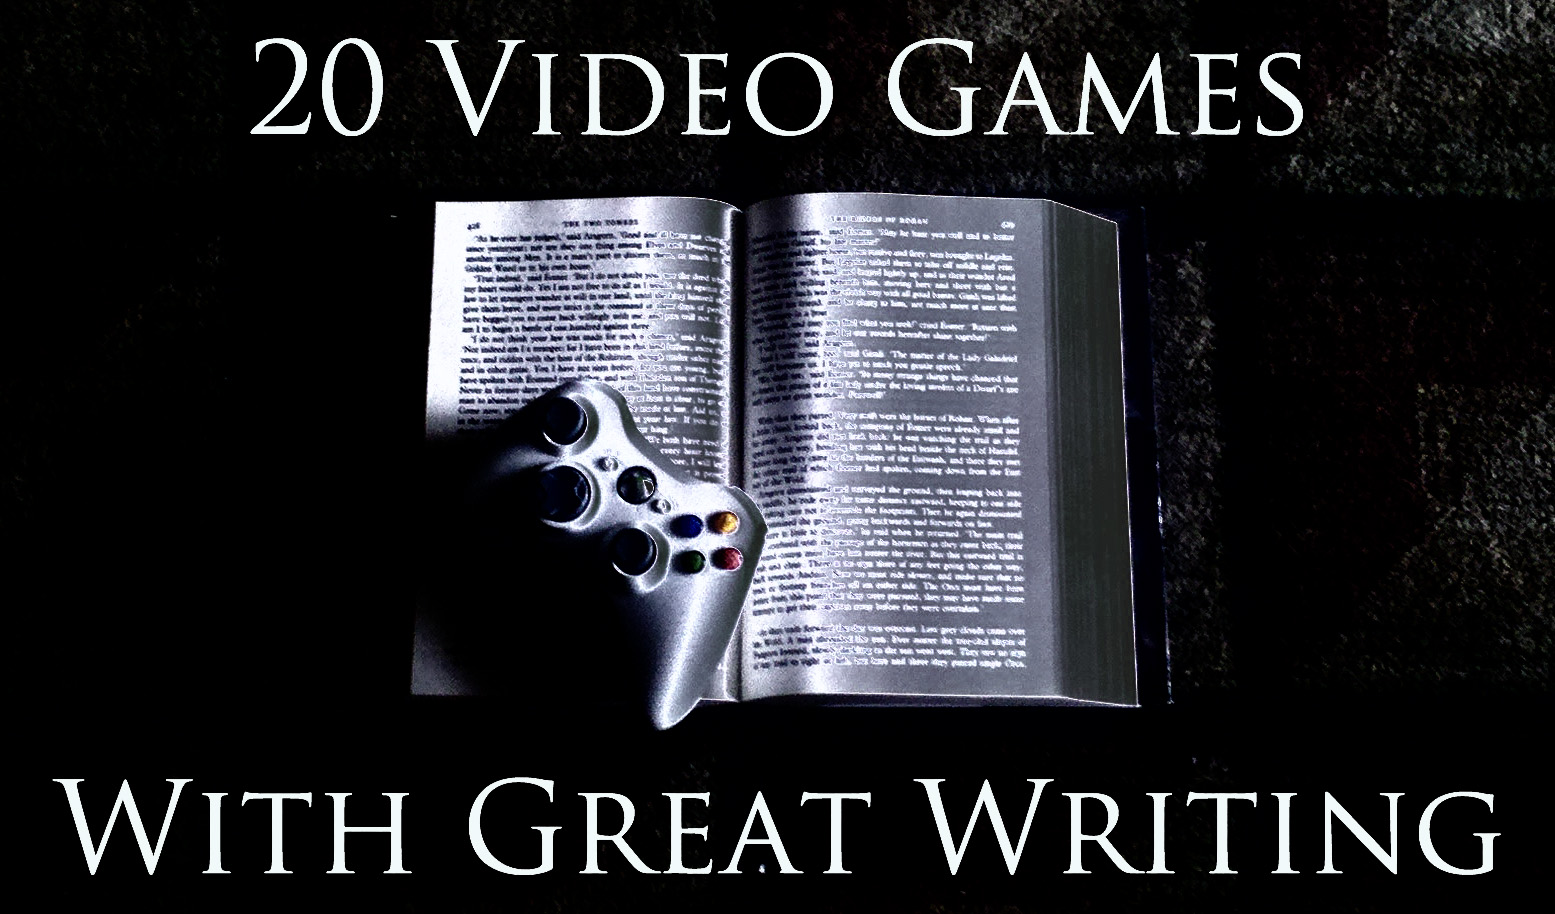 Essay About Violent Video Games